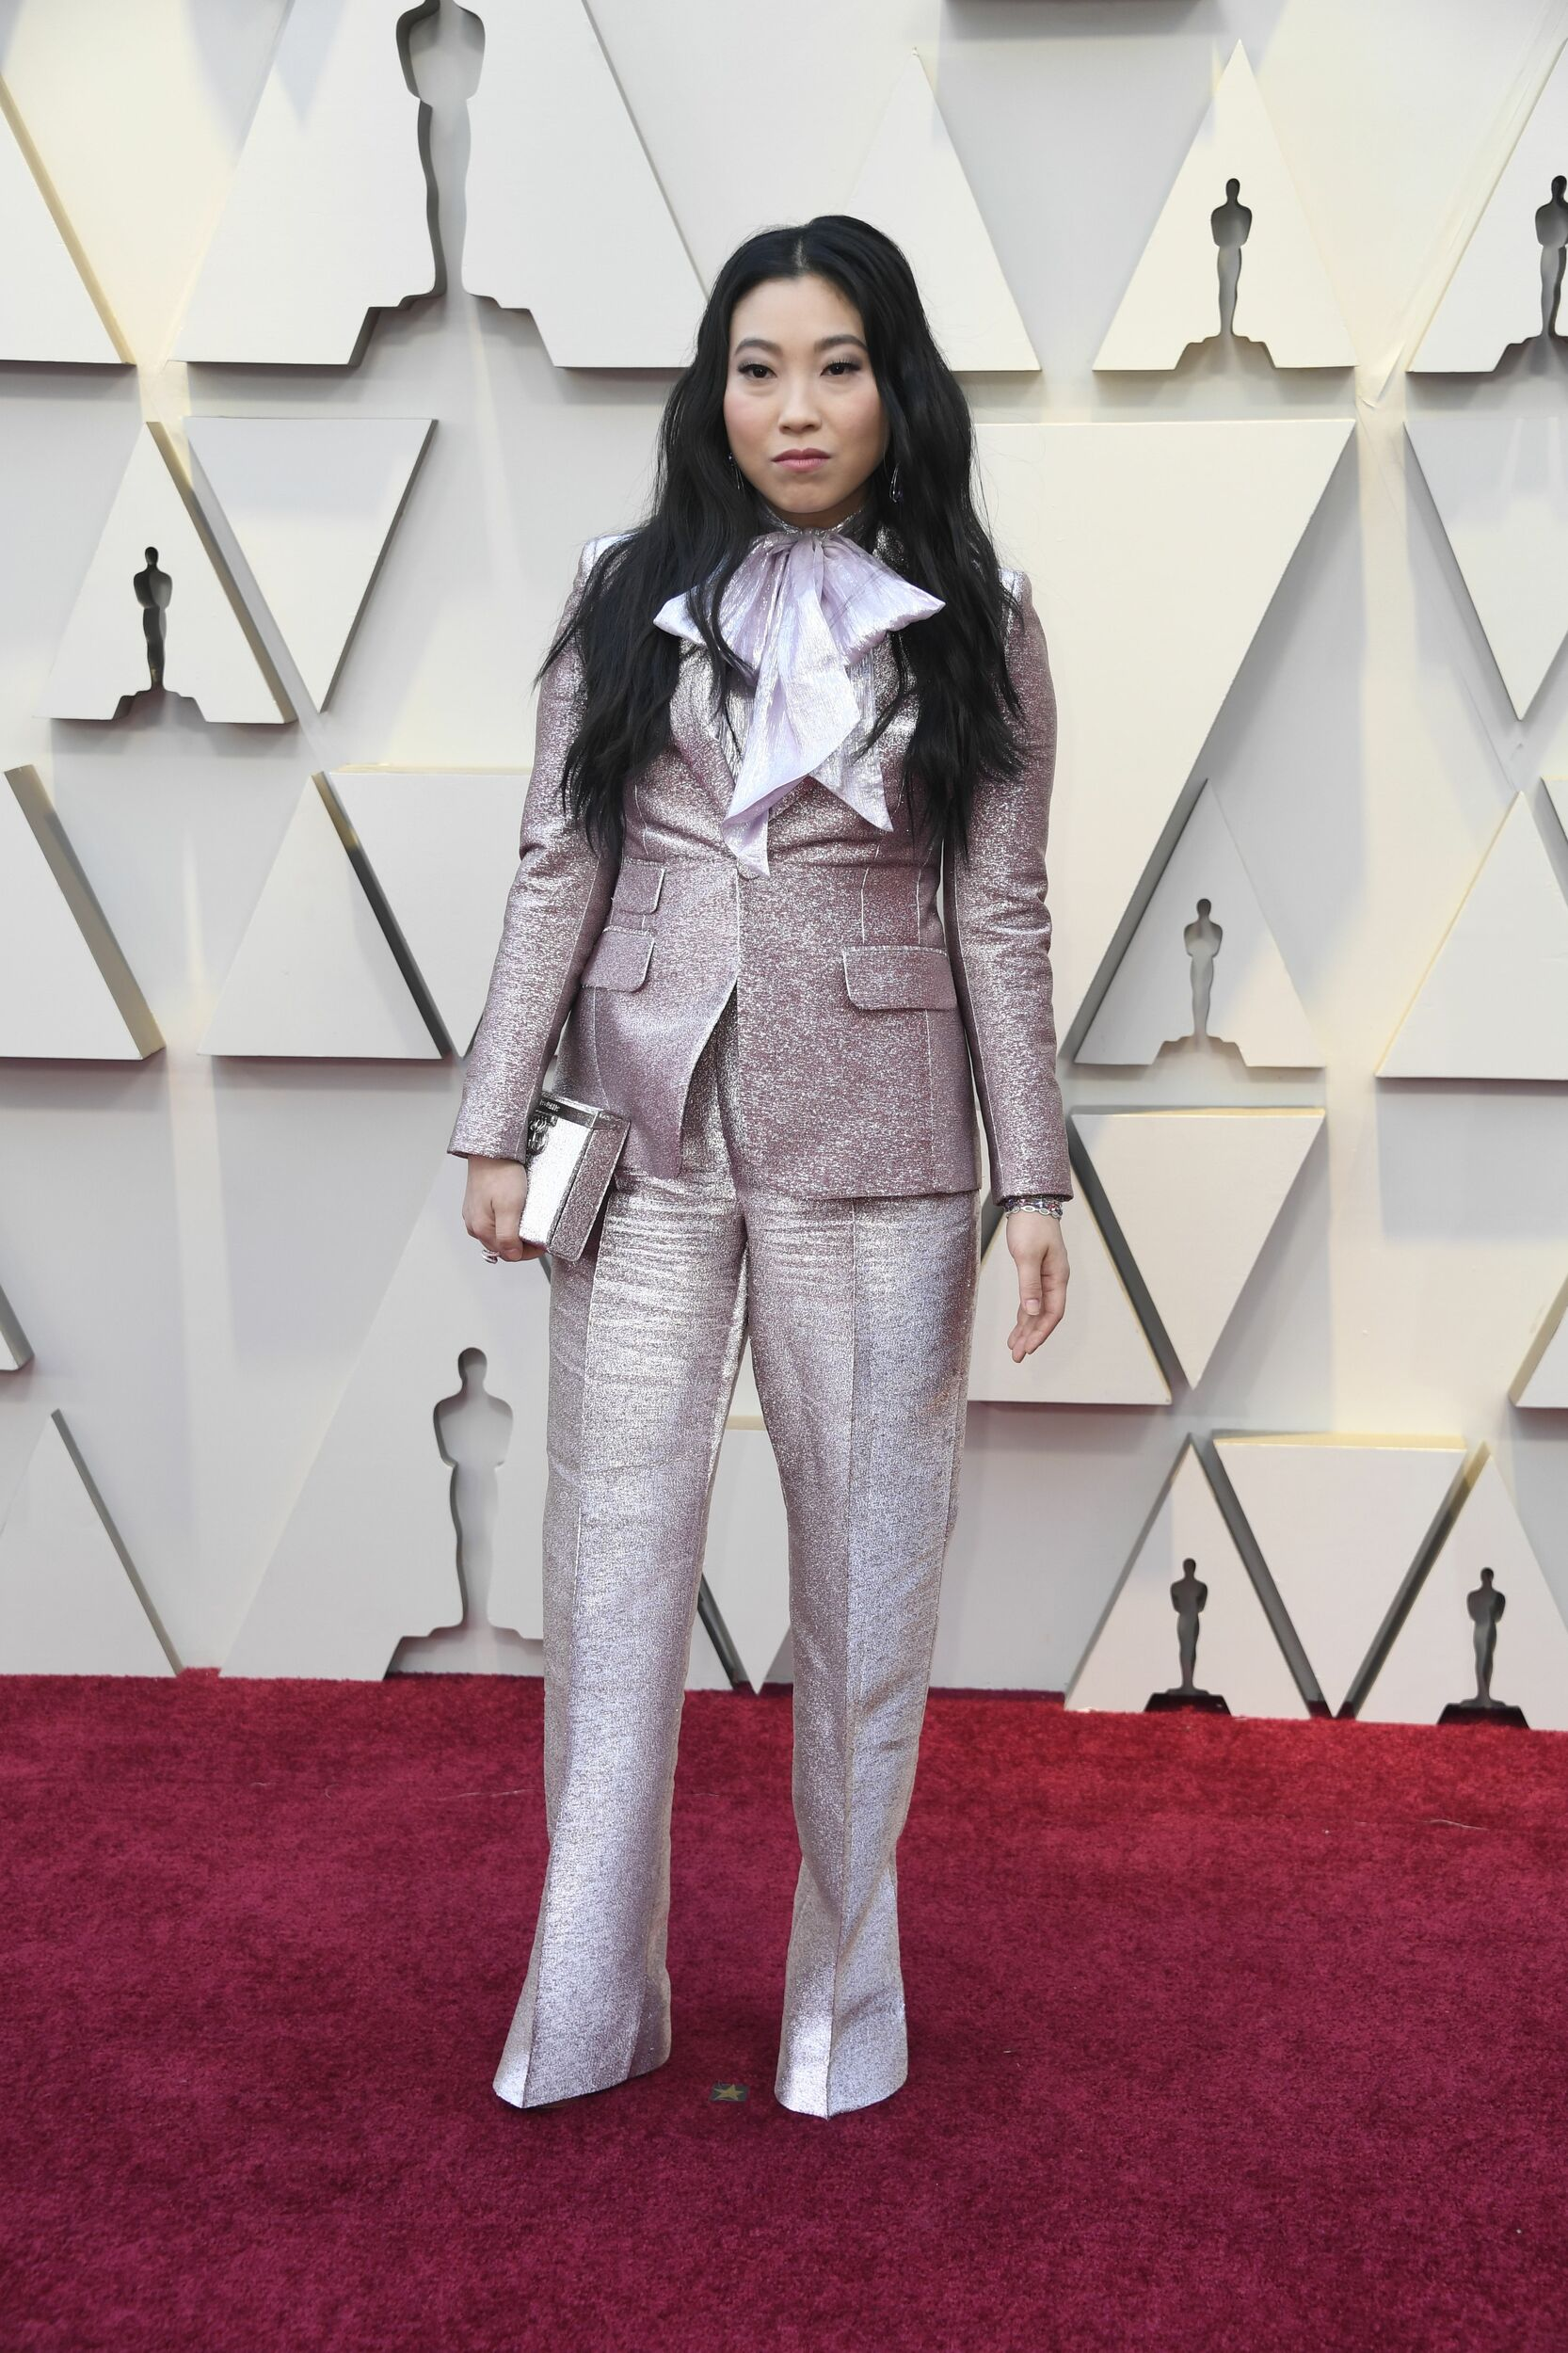 Awkwafina looked at Emilia Clarke and Michelle Yeoh s sparkly outfits and said: What if I took away the glam, added a giant bow to a pantsuit, and made sure my shoes were nowhere to be seen?